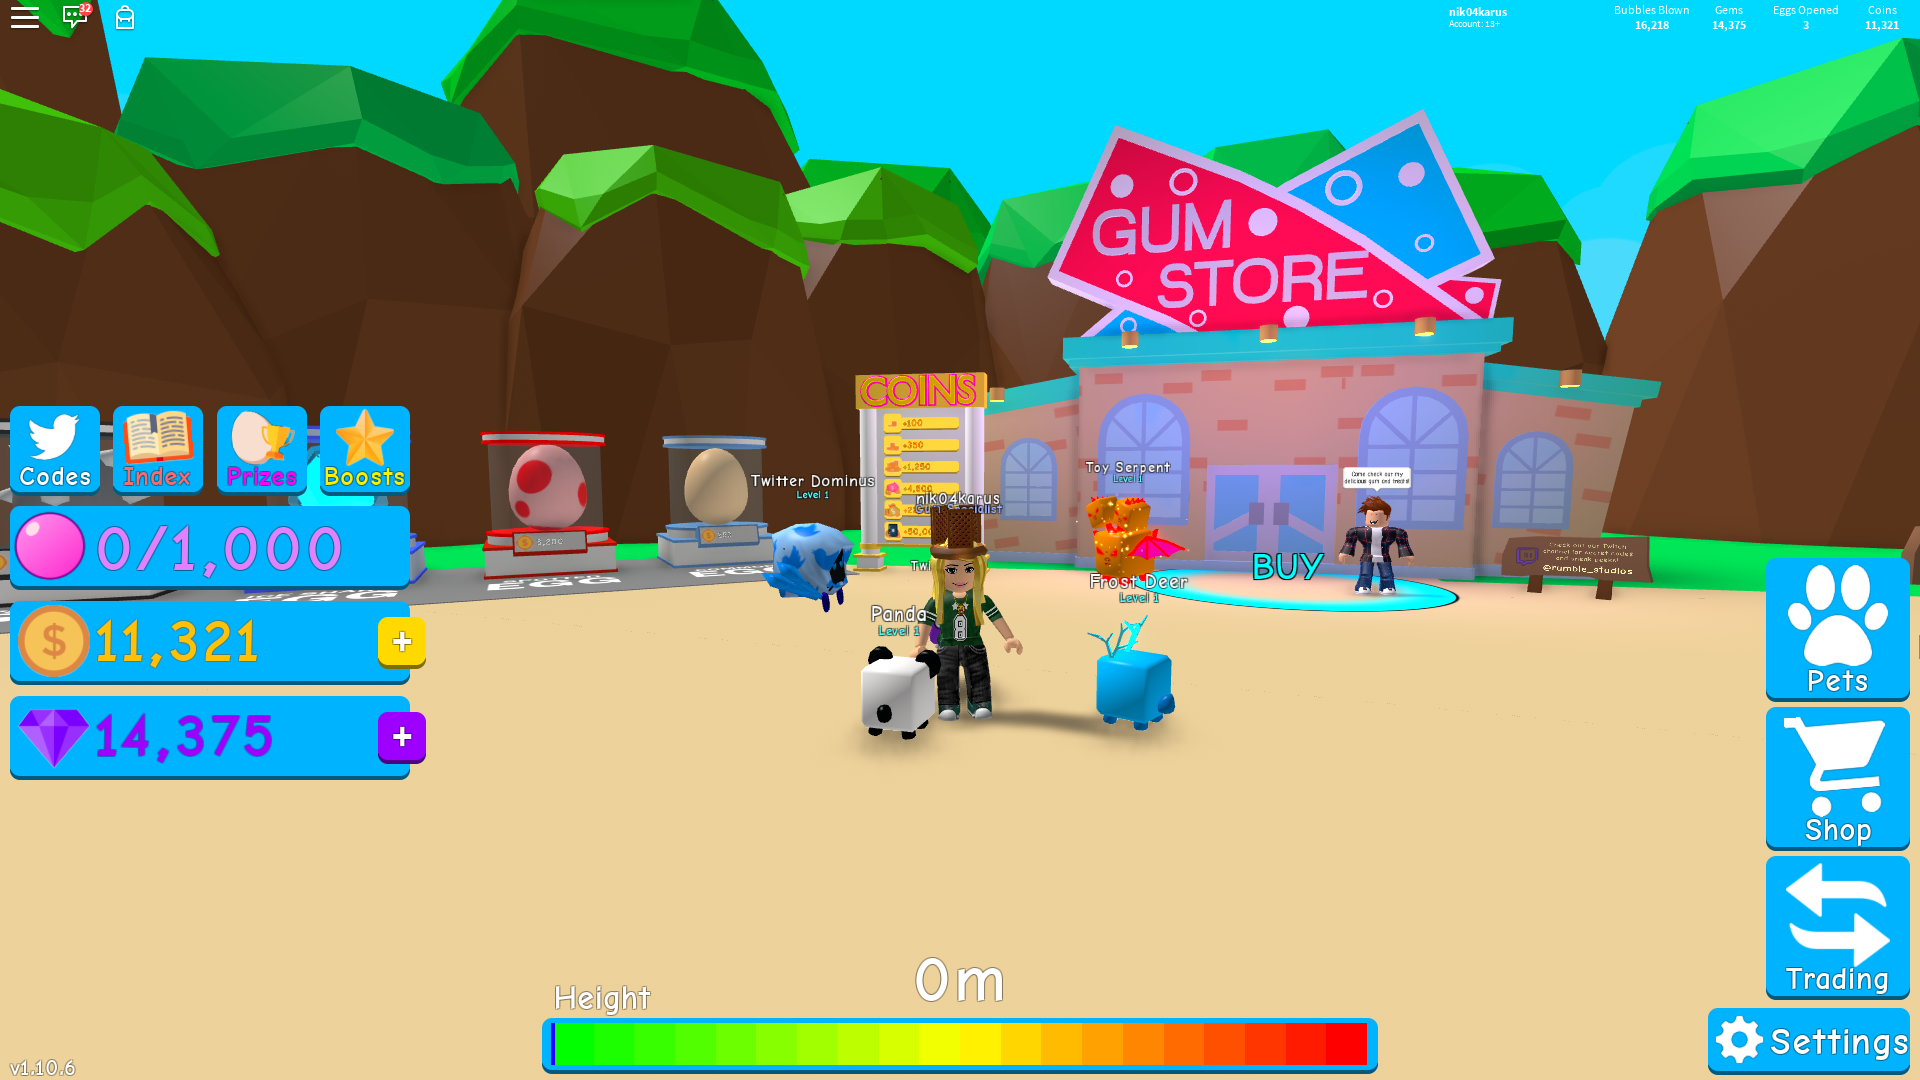 Roblox Bubble Gum Simulator Codes Twitter Bubble Gum Simulator All Working Codes To Get Free Coins Gems Pets And More Fan Site Roblox